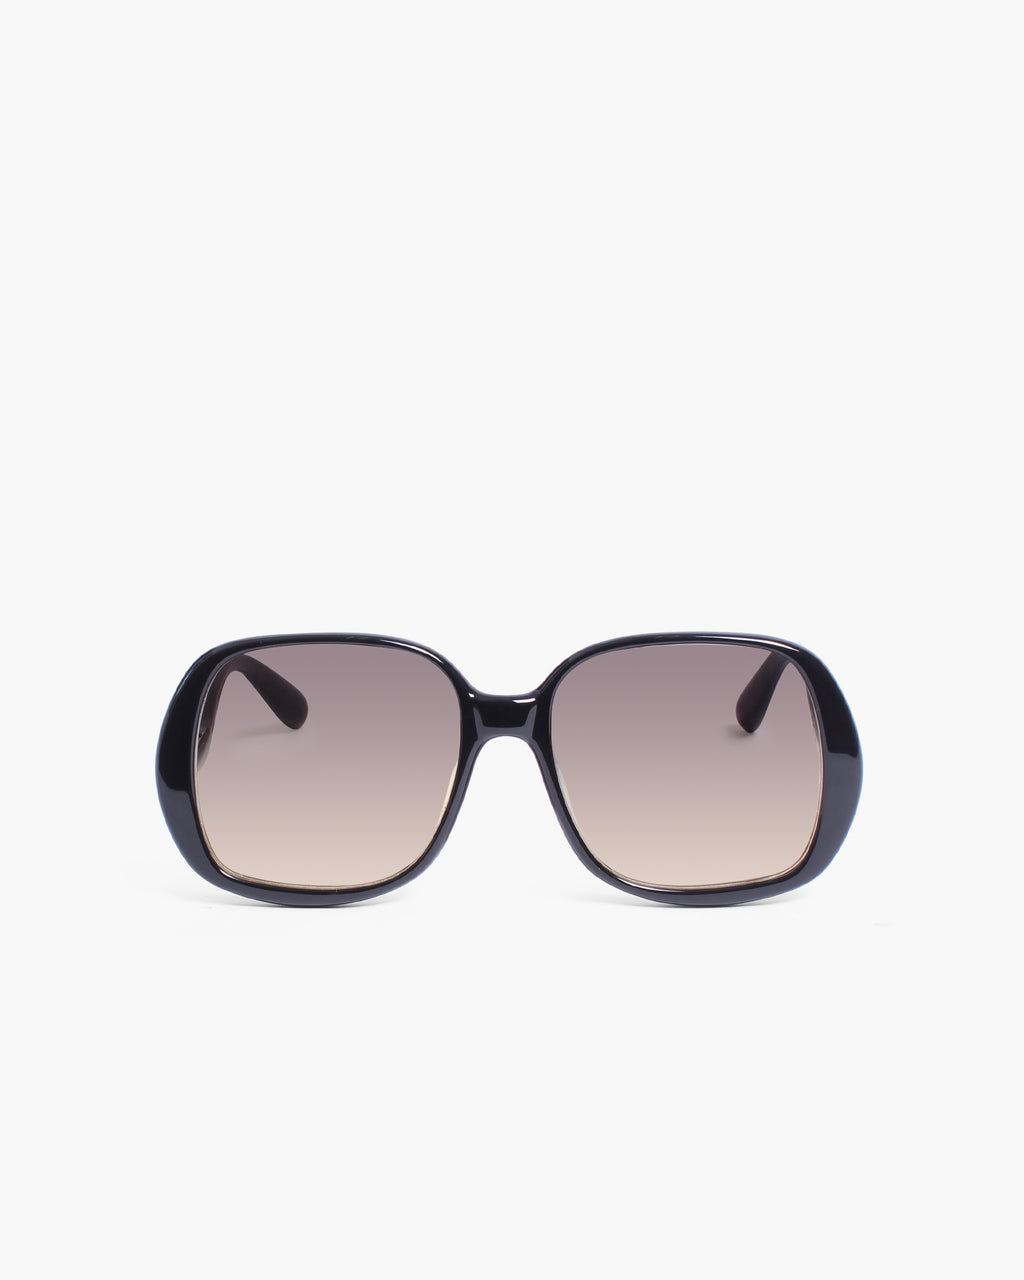 Olive Sunglasses Black